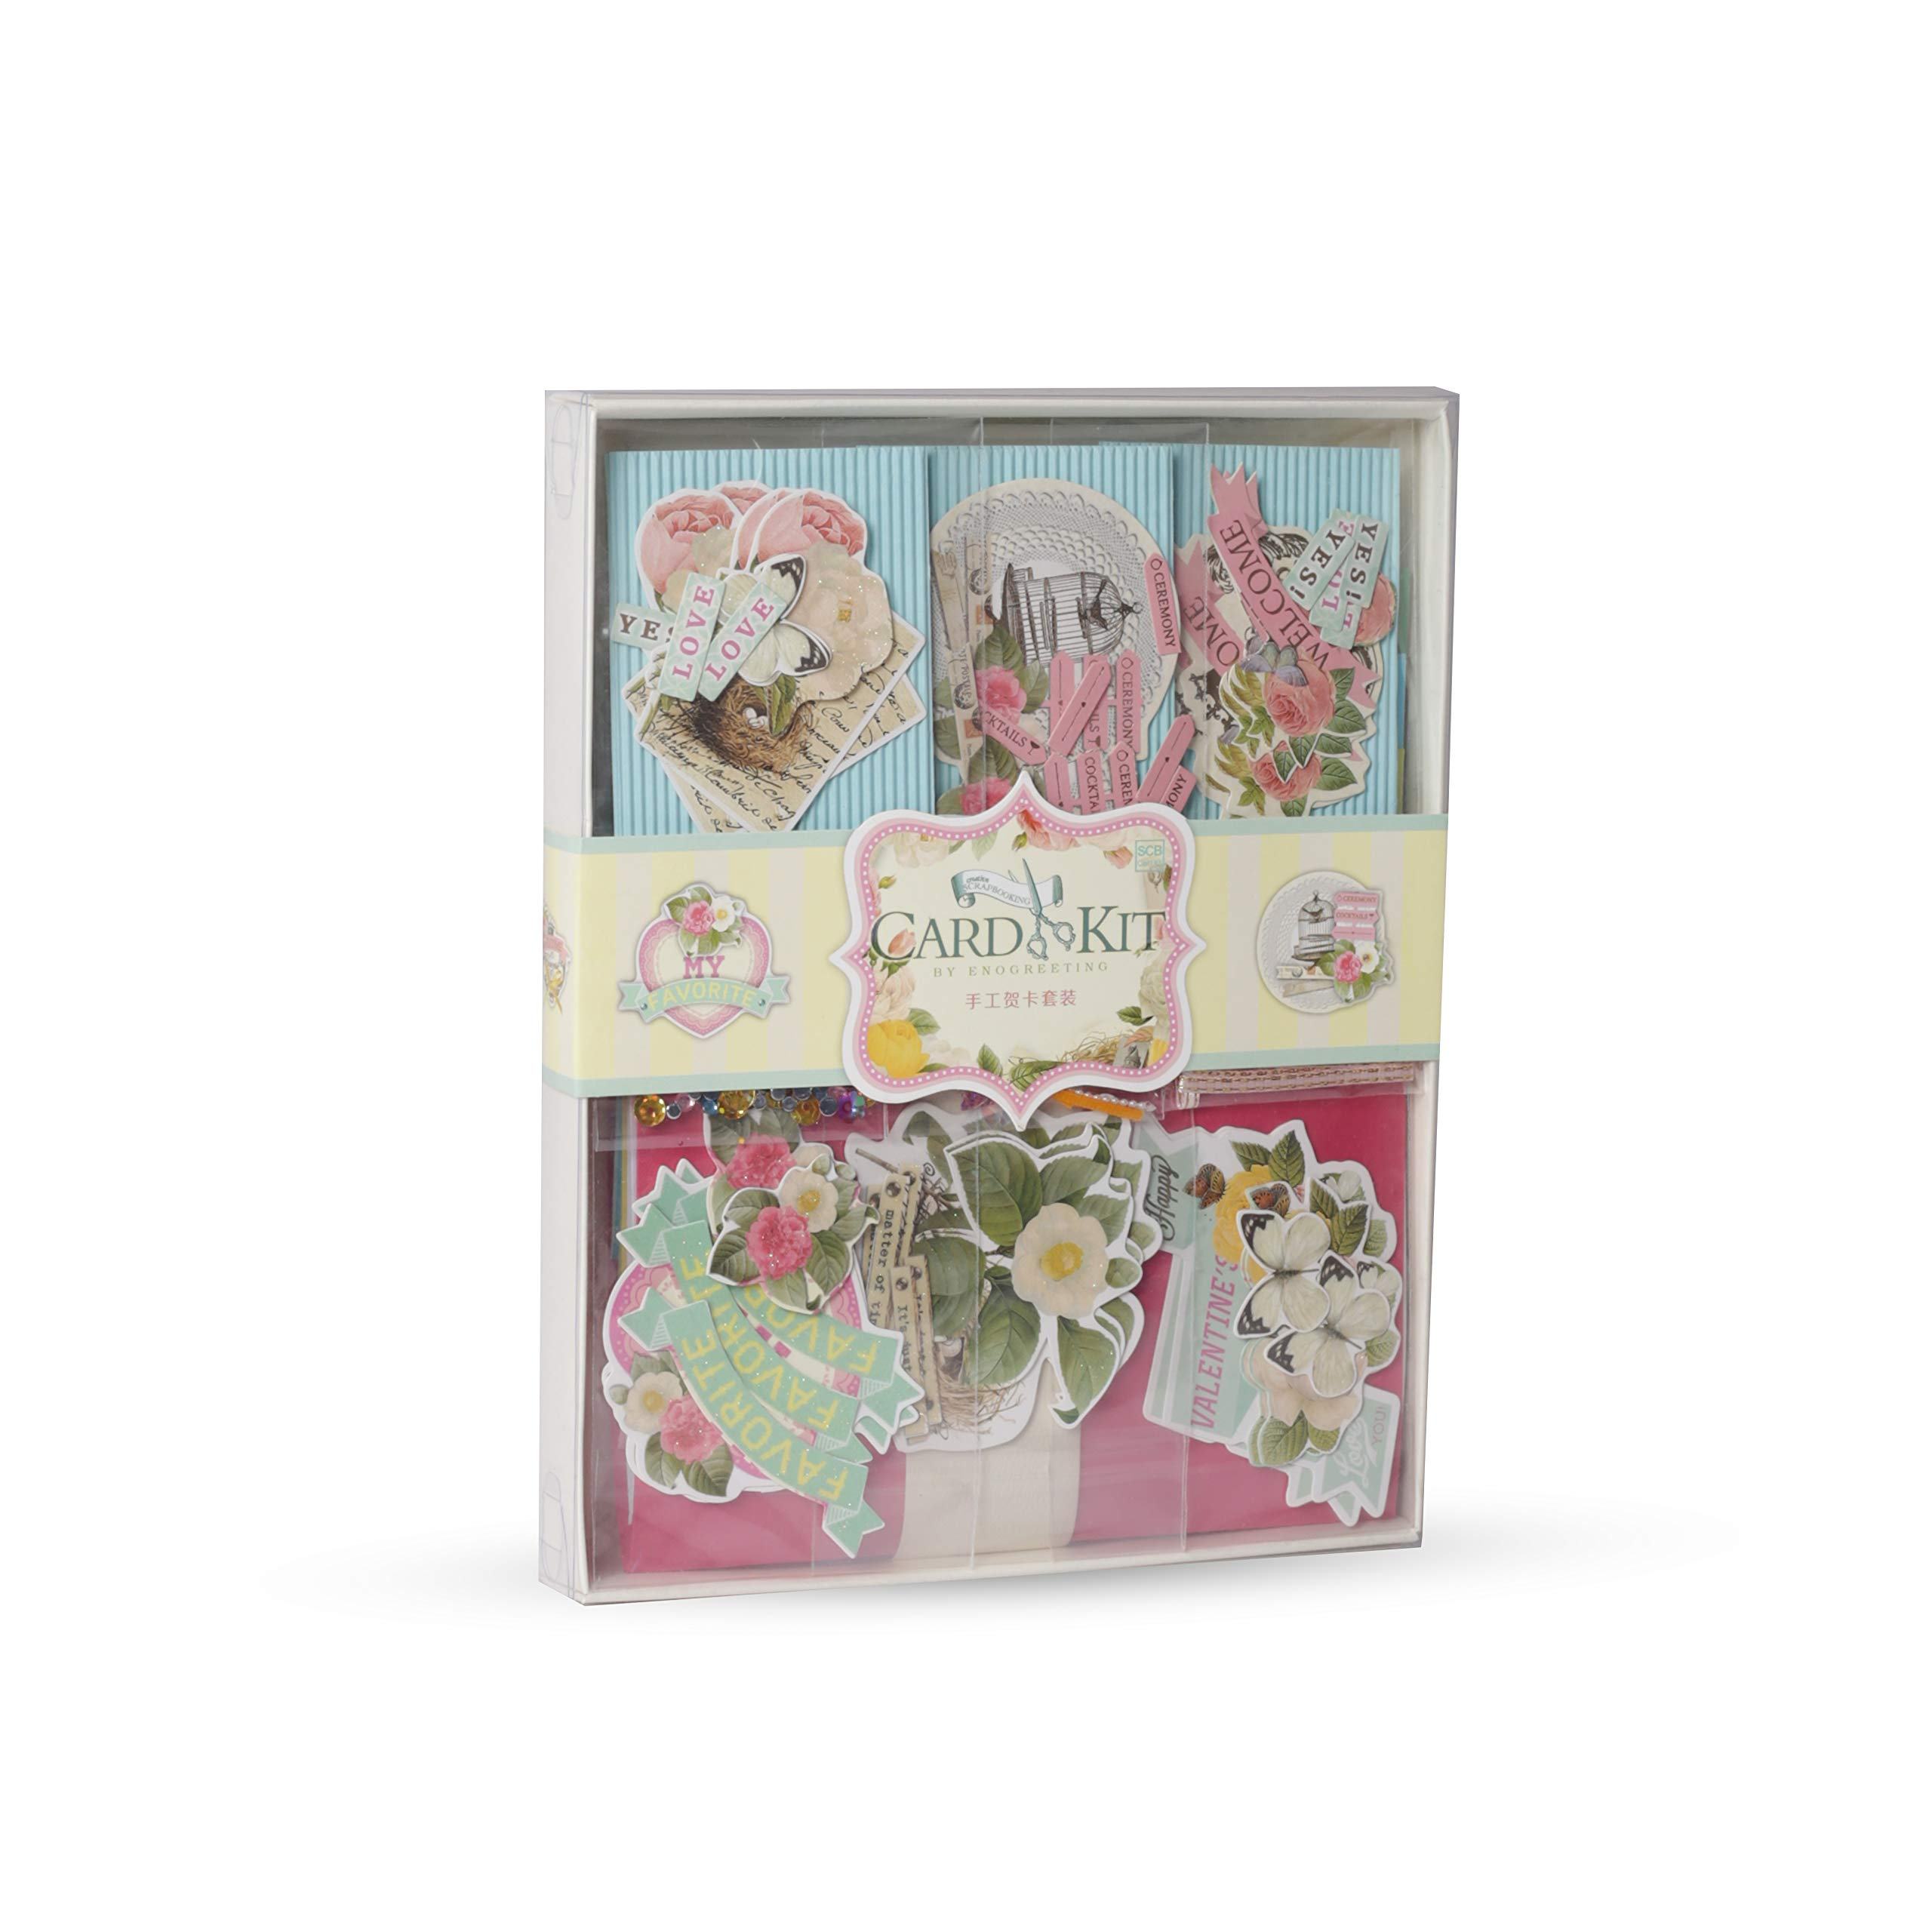 PICKME Card Making Kit Pack, DIY Handmade Greeting Card Kits for Kids, Beautiful Floral Greeting Cards for Birthday, Christmas, Anniversary, Mother's Day, Thanksgiving Day